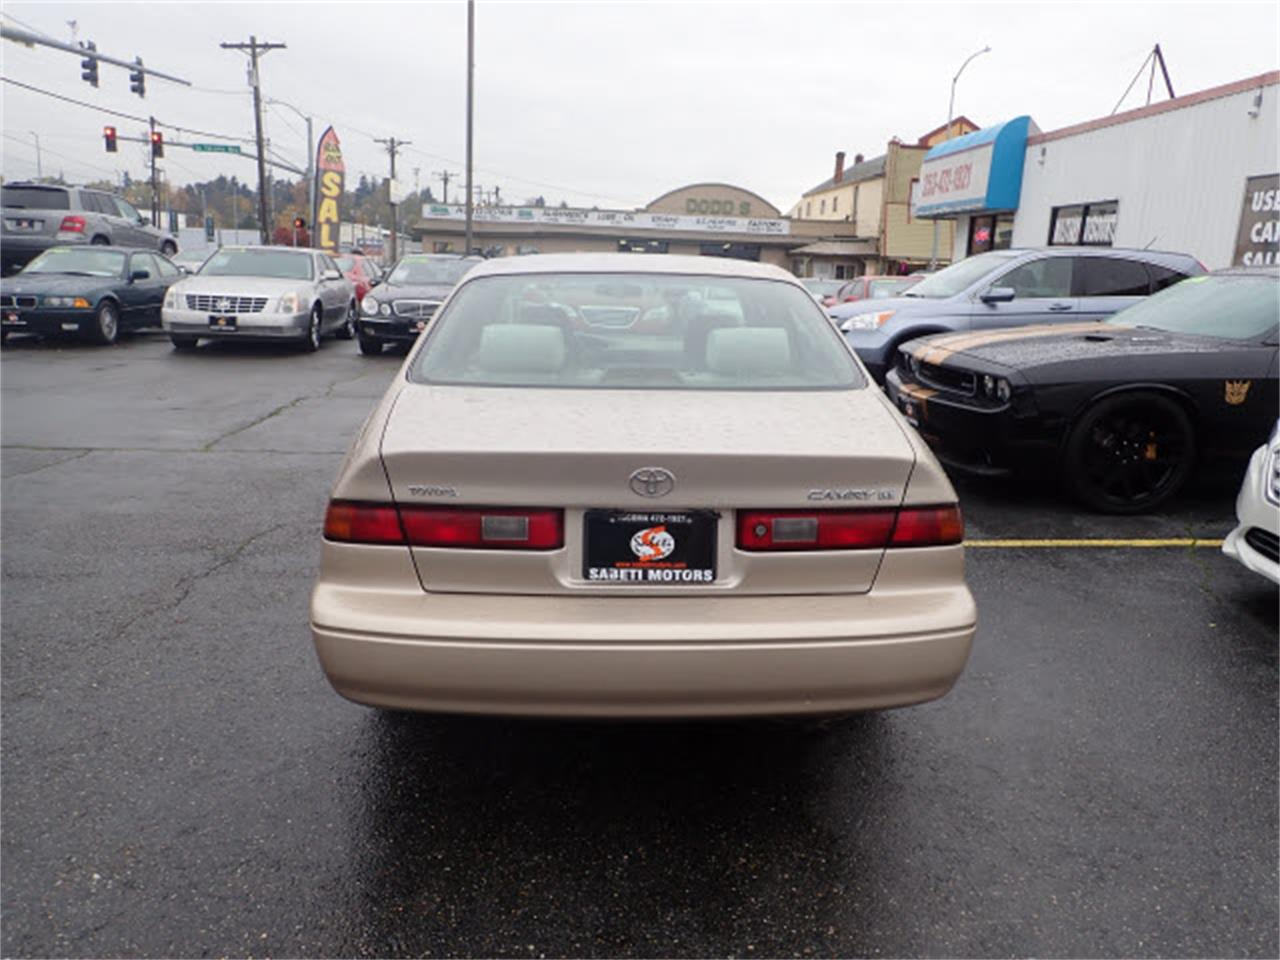 1999 Toyota Camry for sale in Tacoma, WA – photo 4